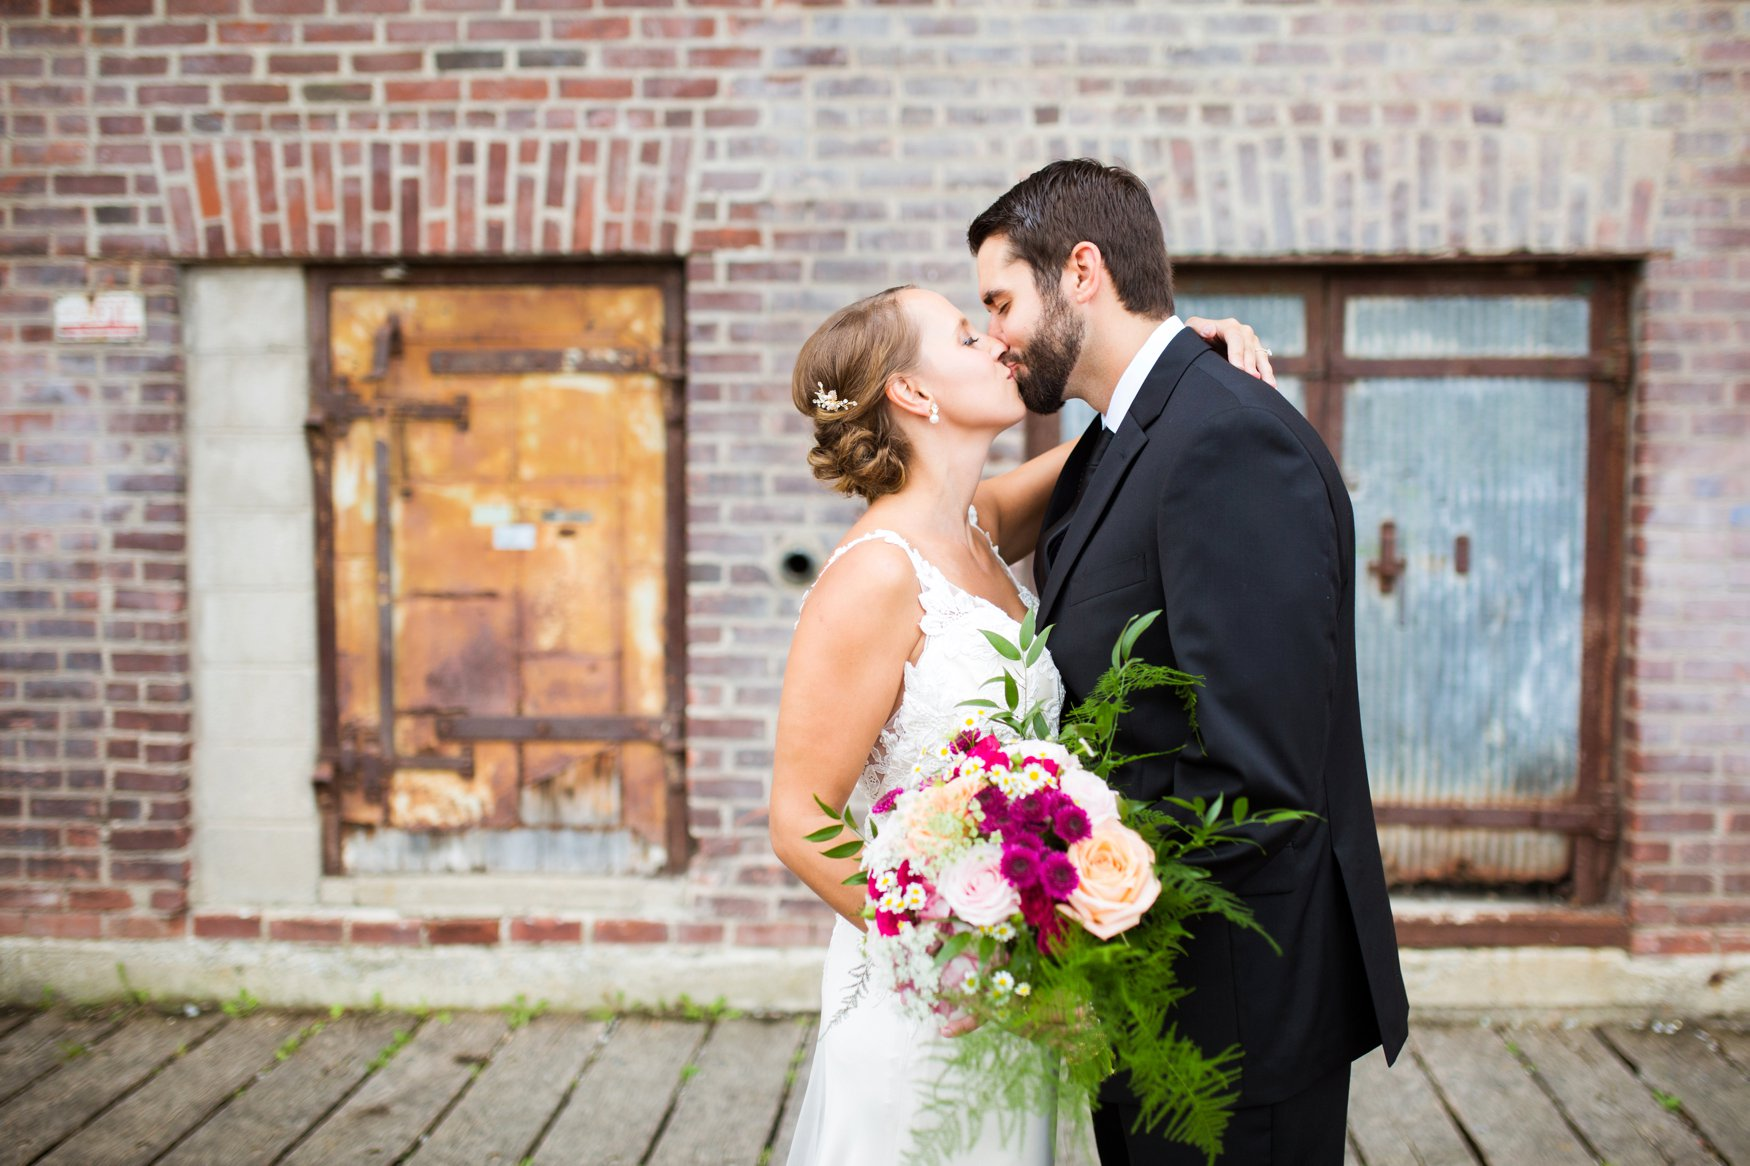 Kaylie and Travis wedding at Day Block | KH Studio Photography | Sixpence Events Wedding Planning